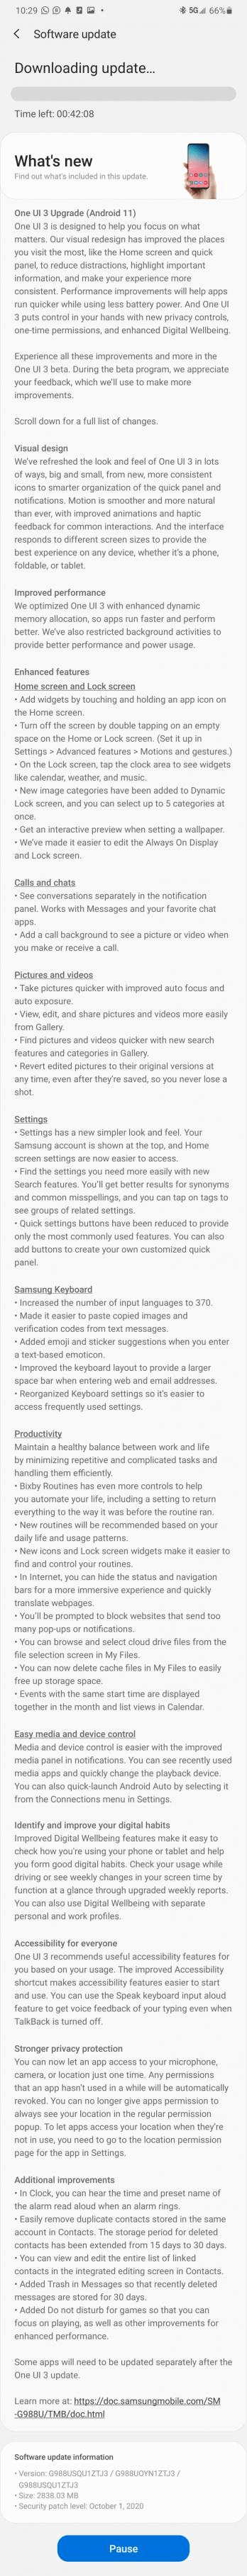 Samsung Galaxy S20 Ultra One UI 3.0 Public Beta Update Changelog USA